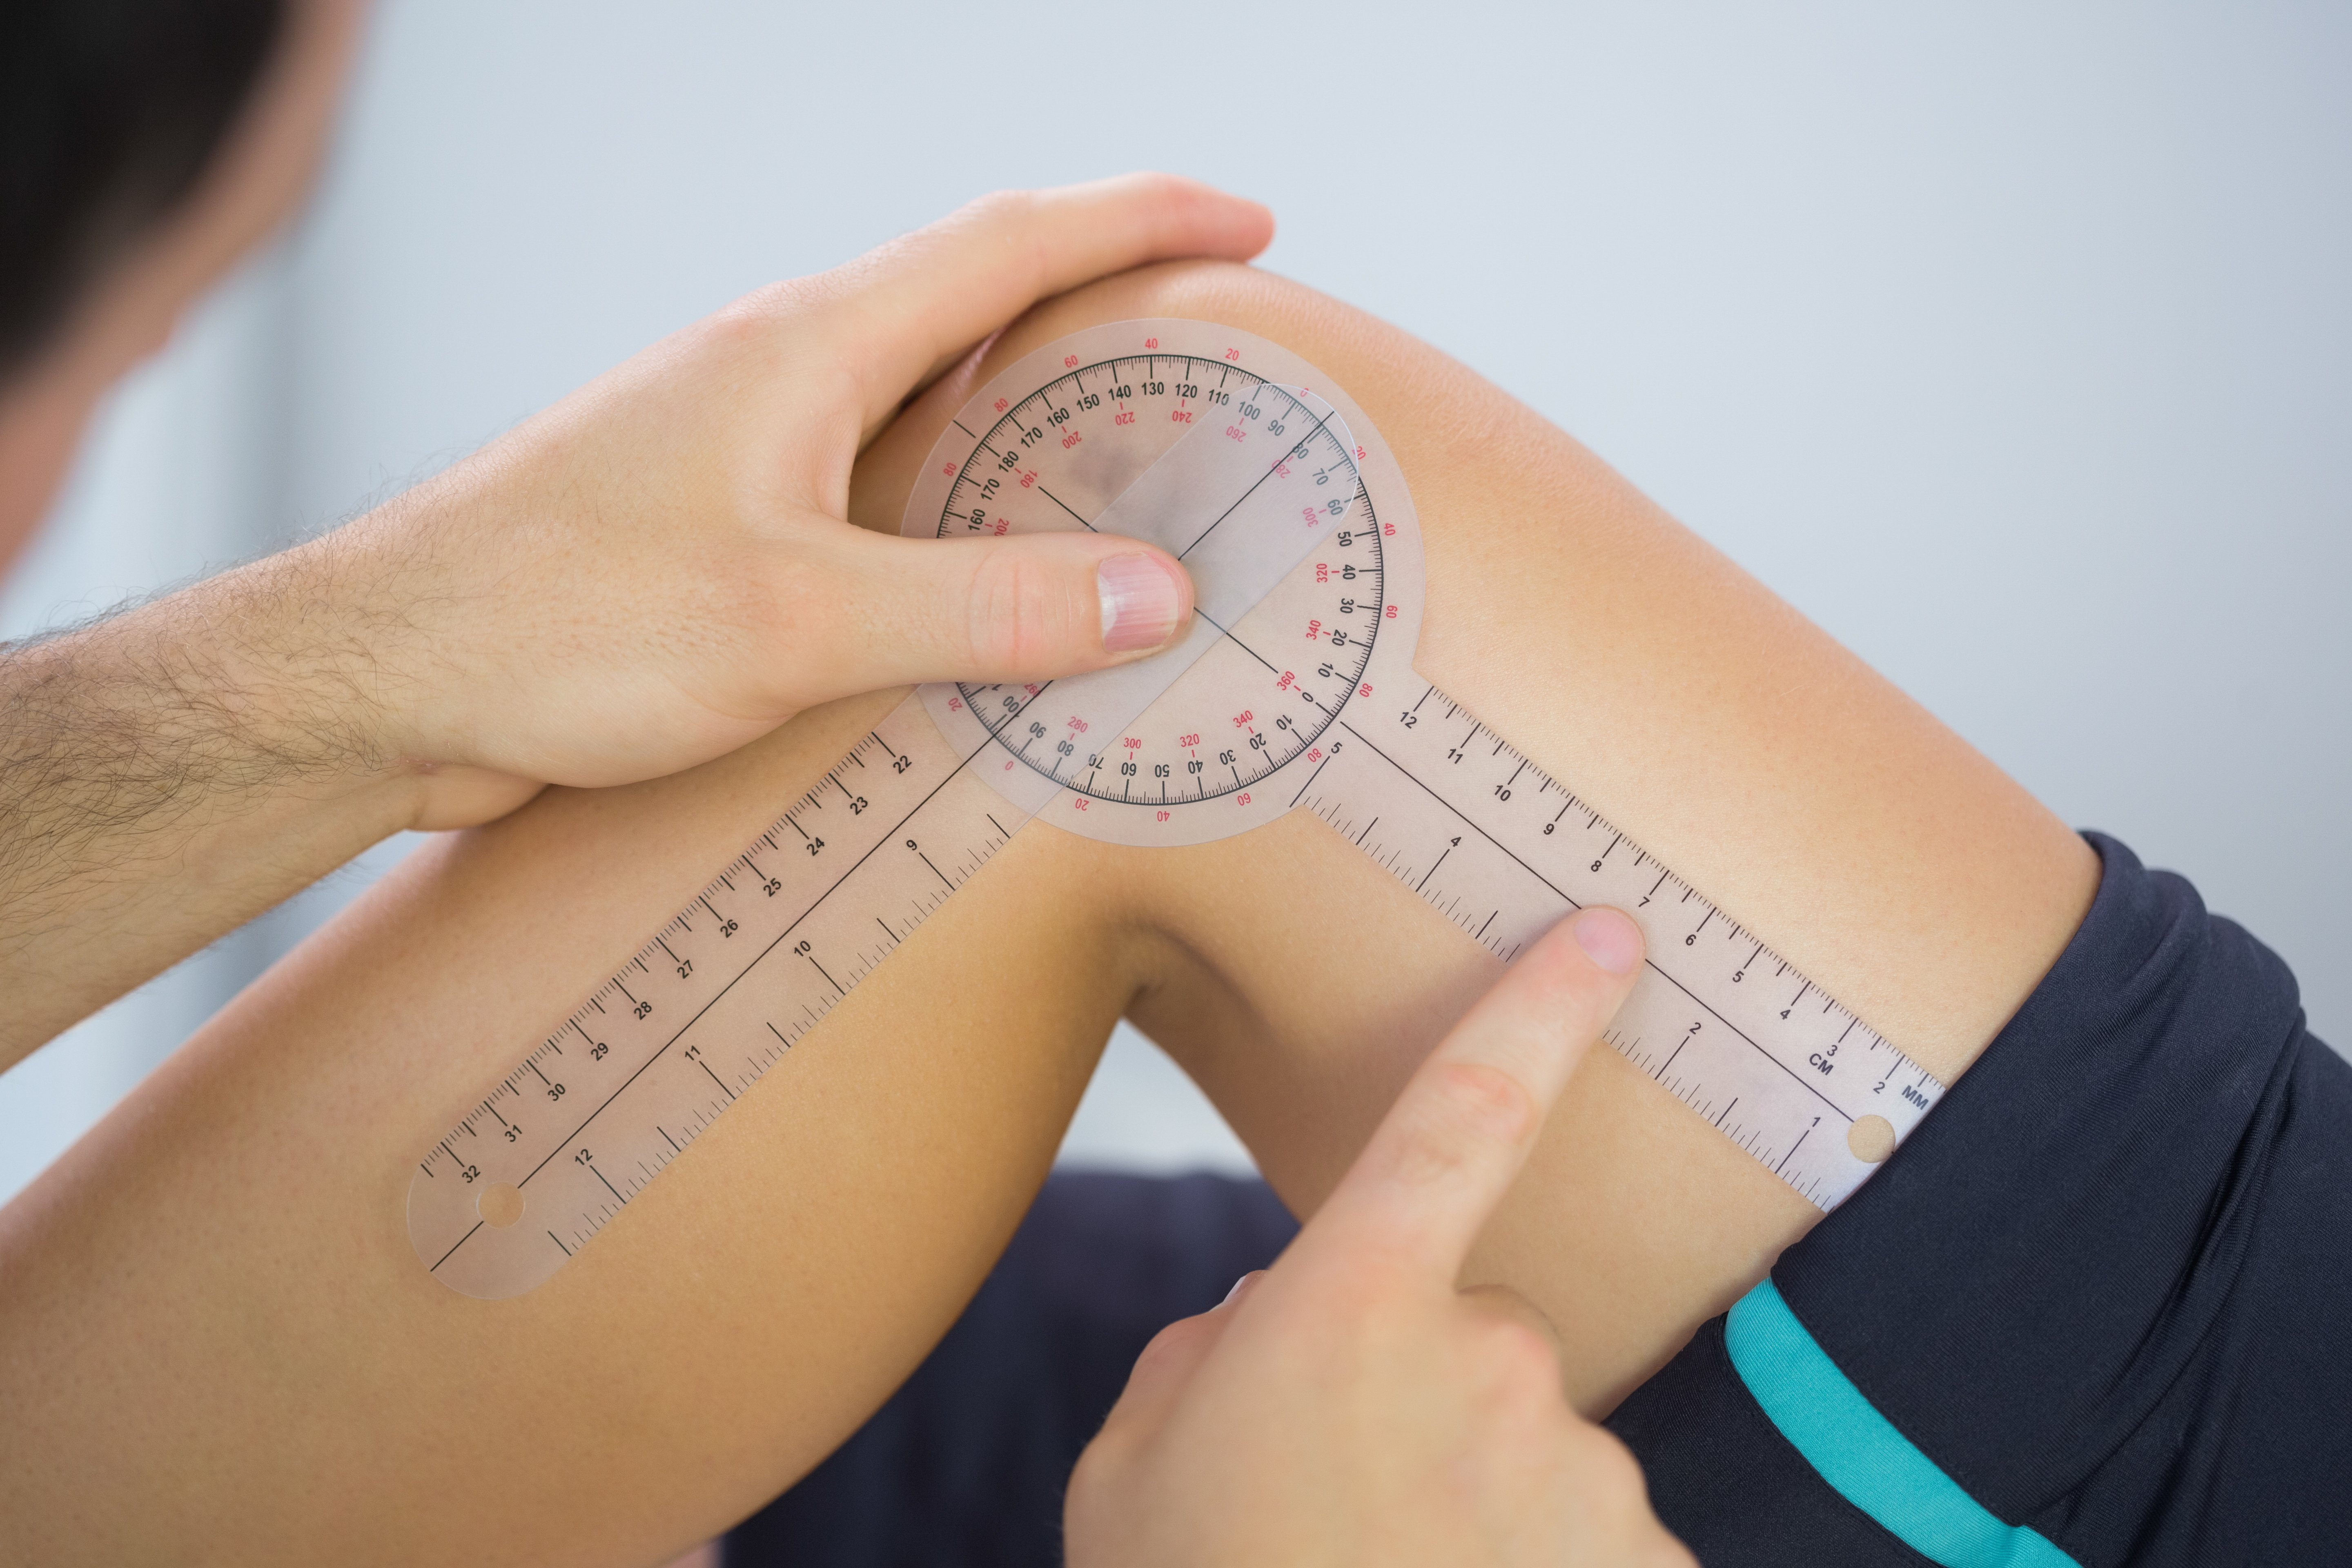 Physiotherapist examining knee angle with goniometer in bright office